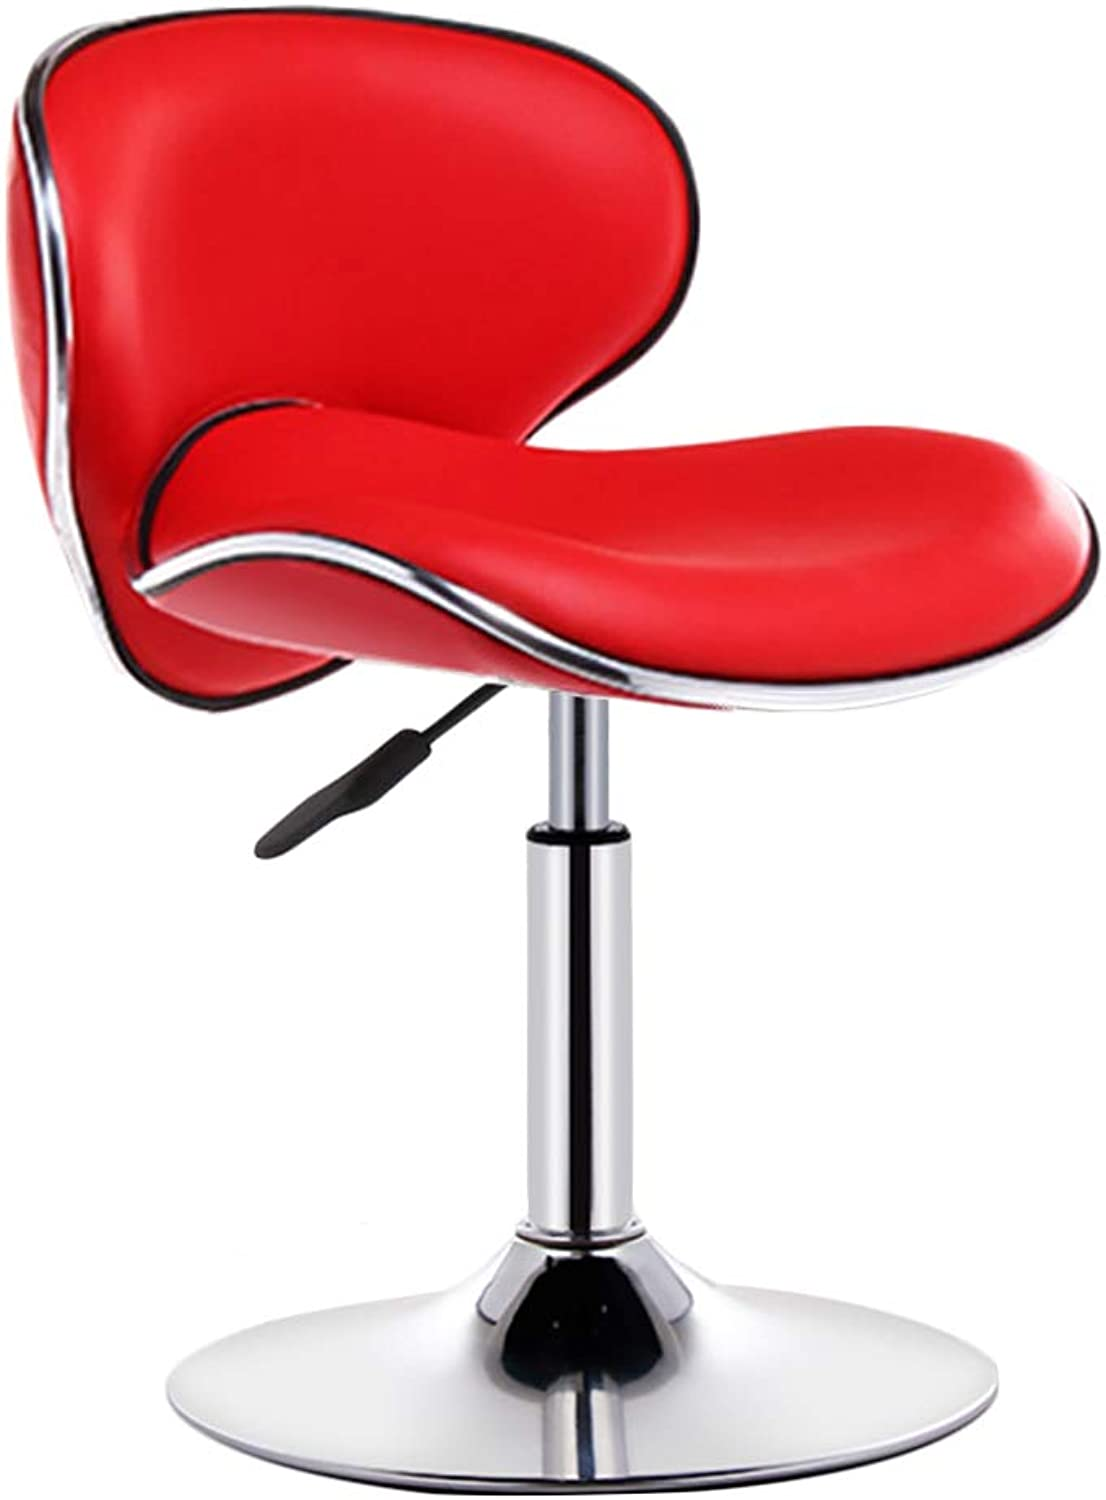 LIQICAI Bar Stool Faux Leather Upholster Adjustable Swivel Gas Lift Extra Backrest Footrest Large Base, 7 colors Optional (color   RED, Size   41cm Base X 55cm heigh)